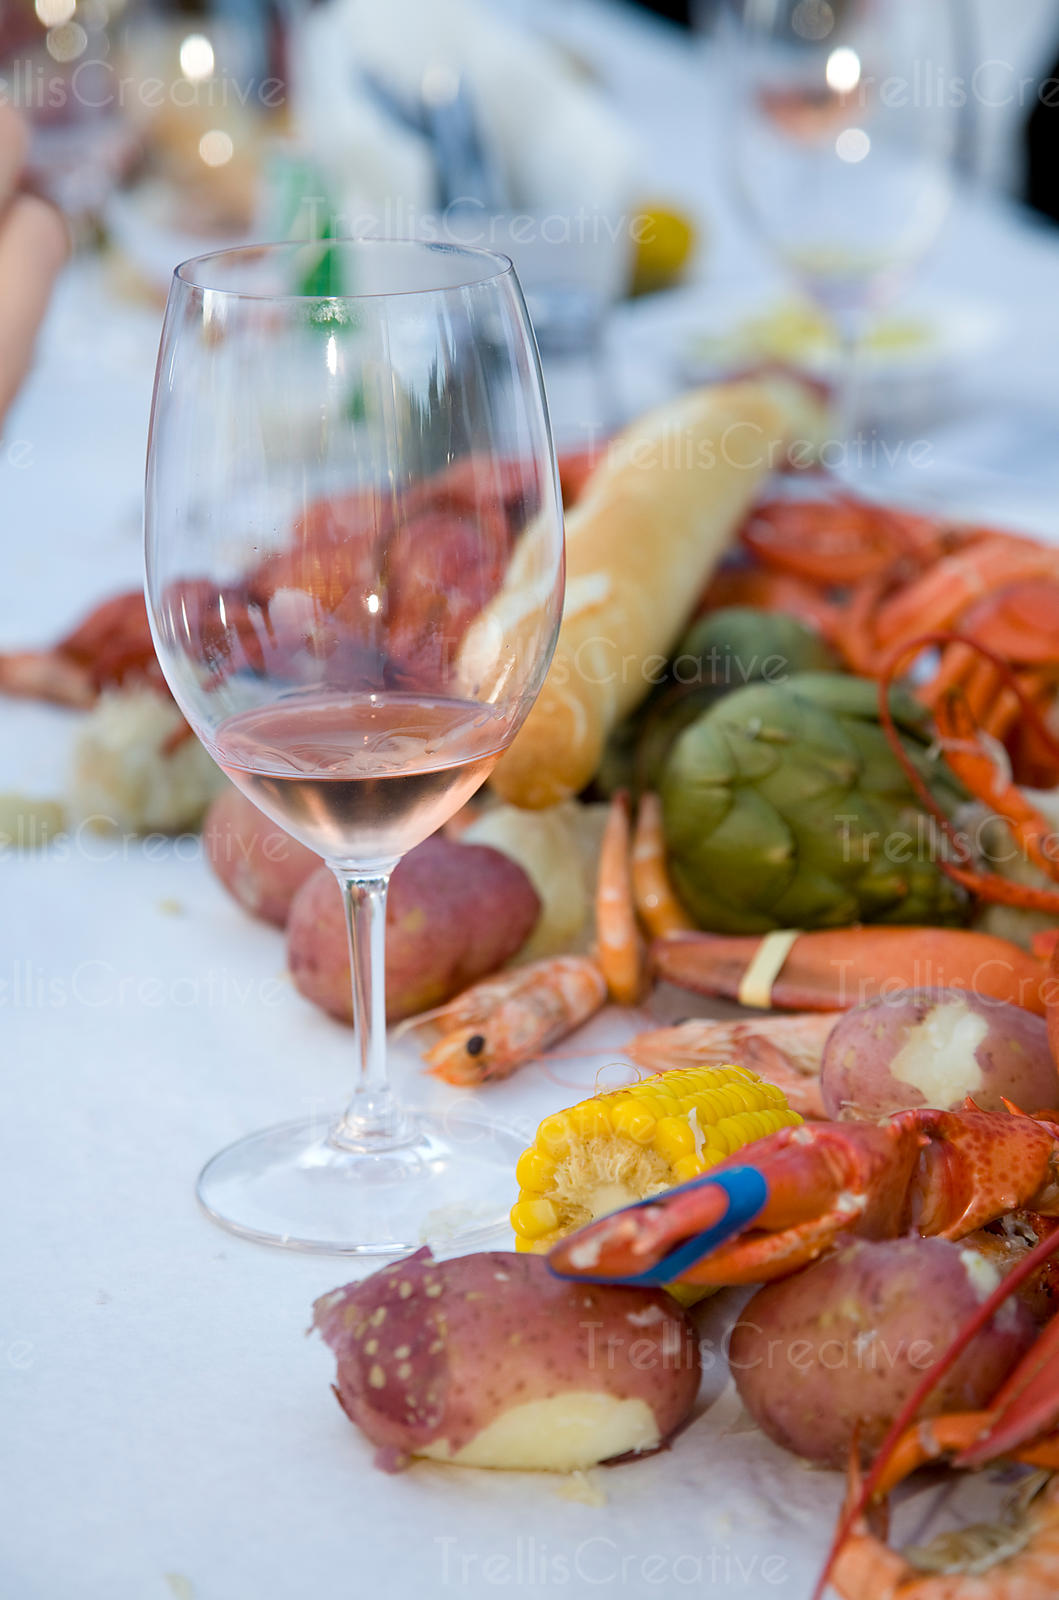 Chilled rose wine is paired with steamed lobster and summer vegetables